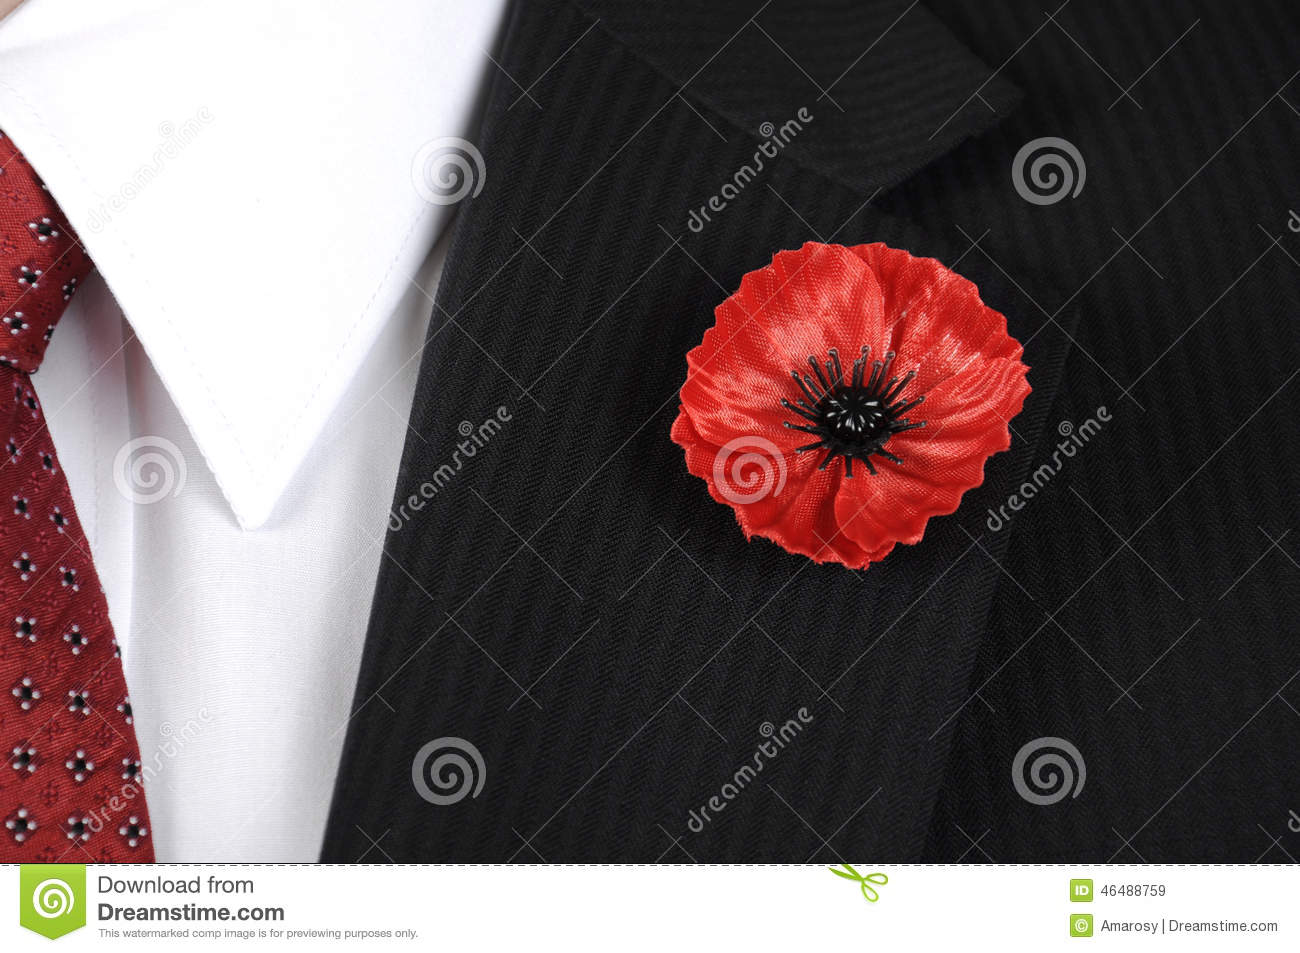 Lest We Forget Red Poppy Lapel Pin Badge On Mans Black Suit Stock